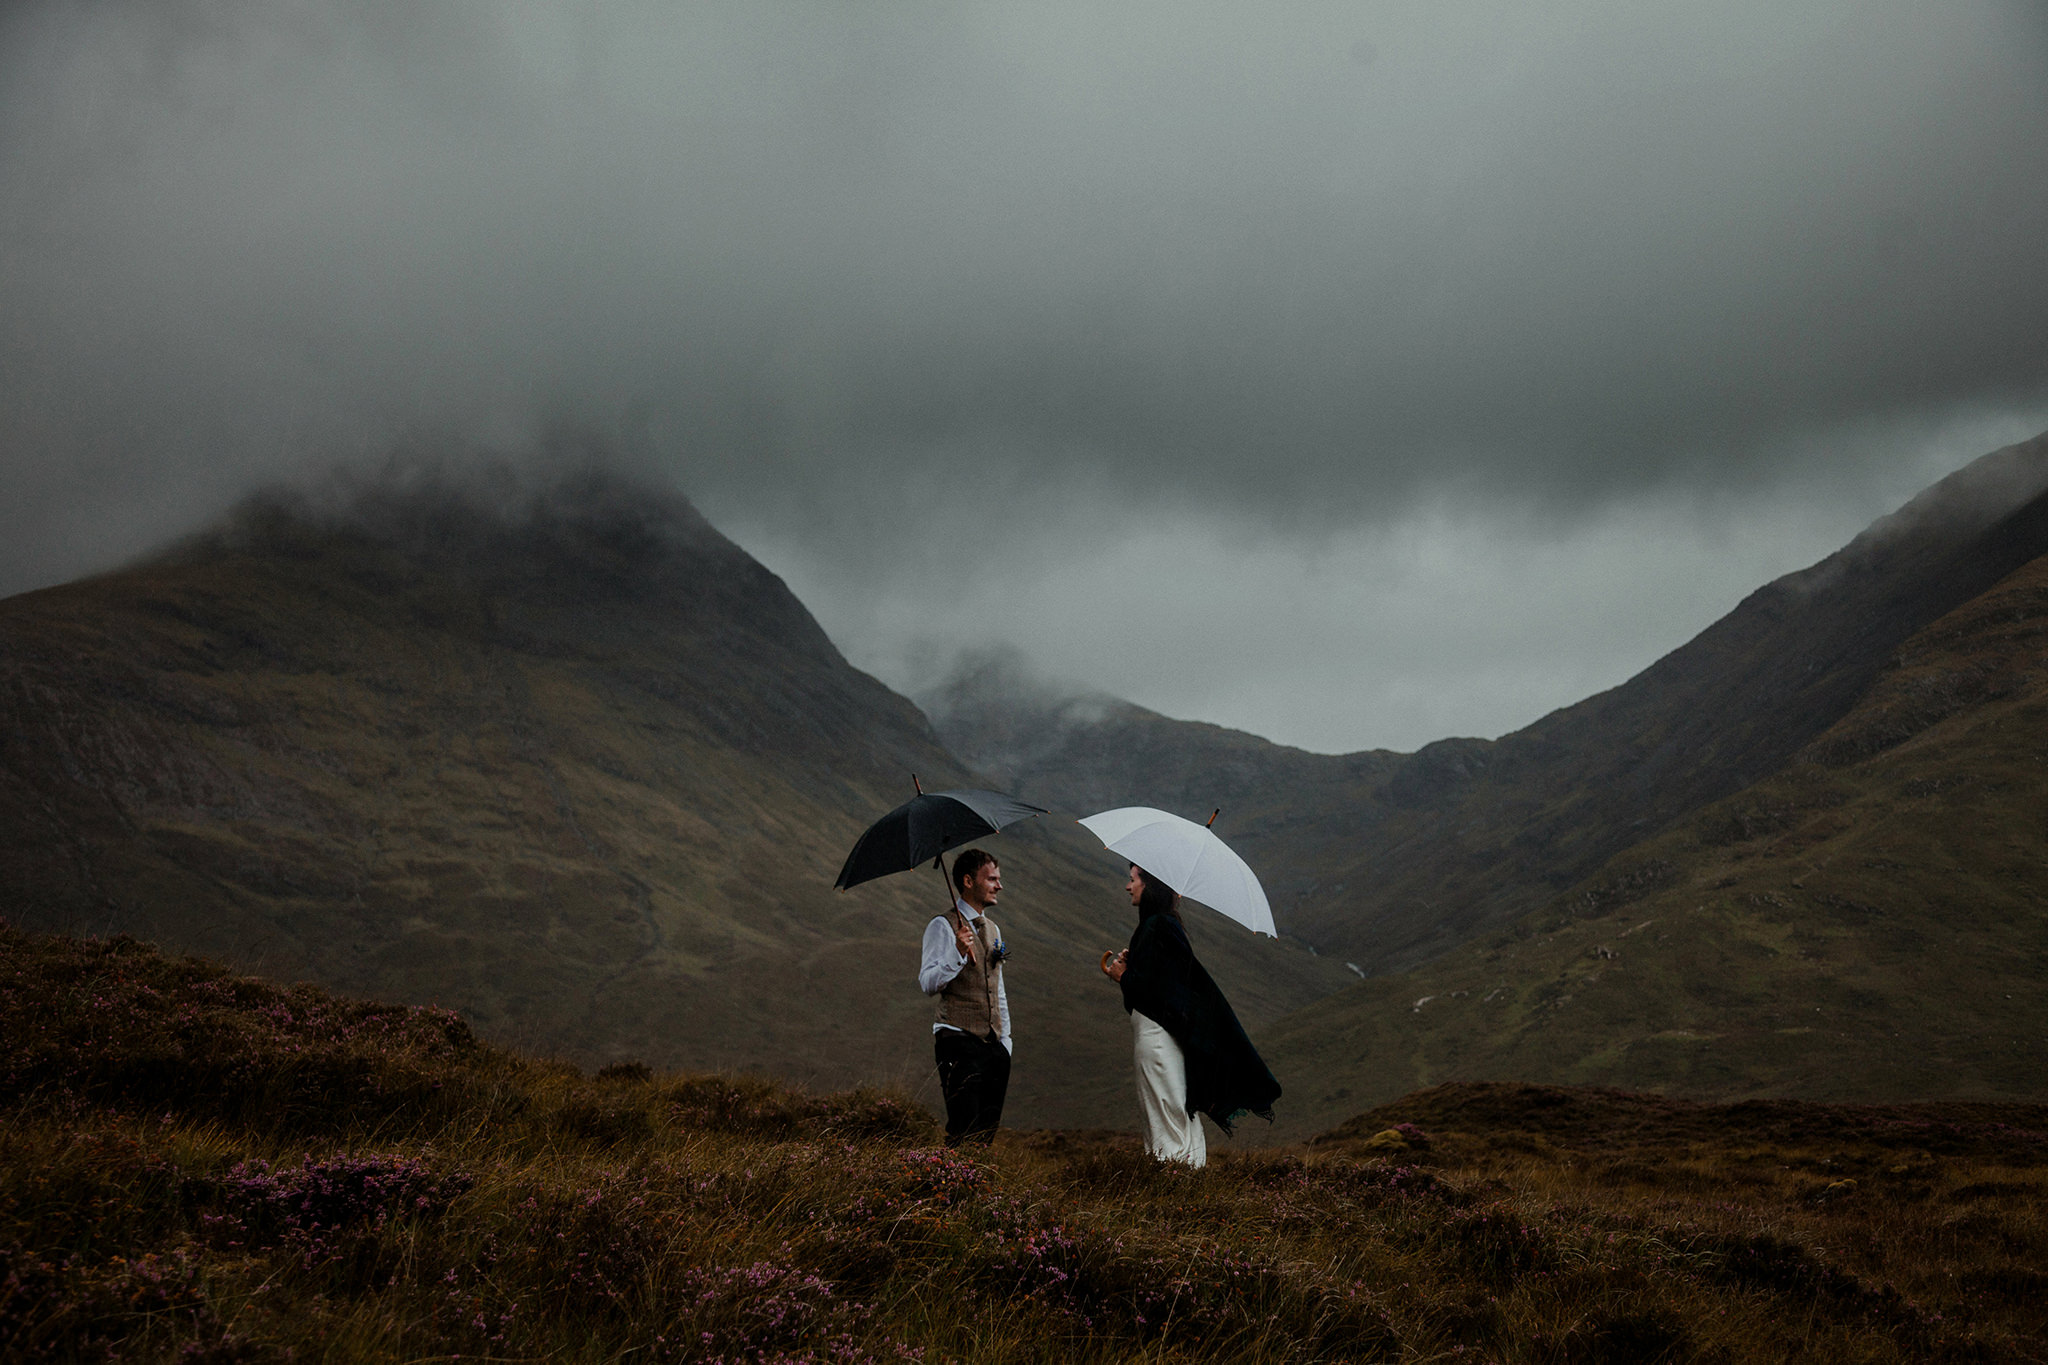 Isle of Skye elopement couple standing amidst the mountains in rain holding umbrellas